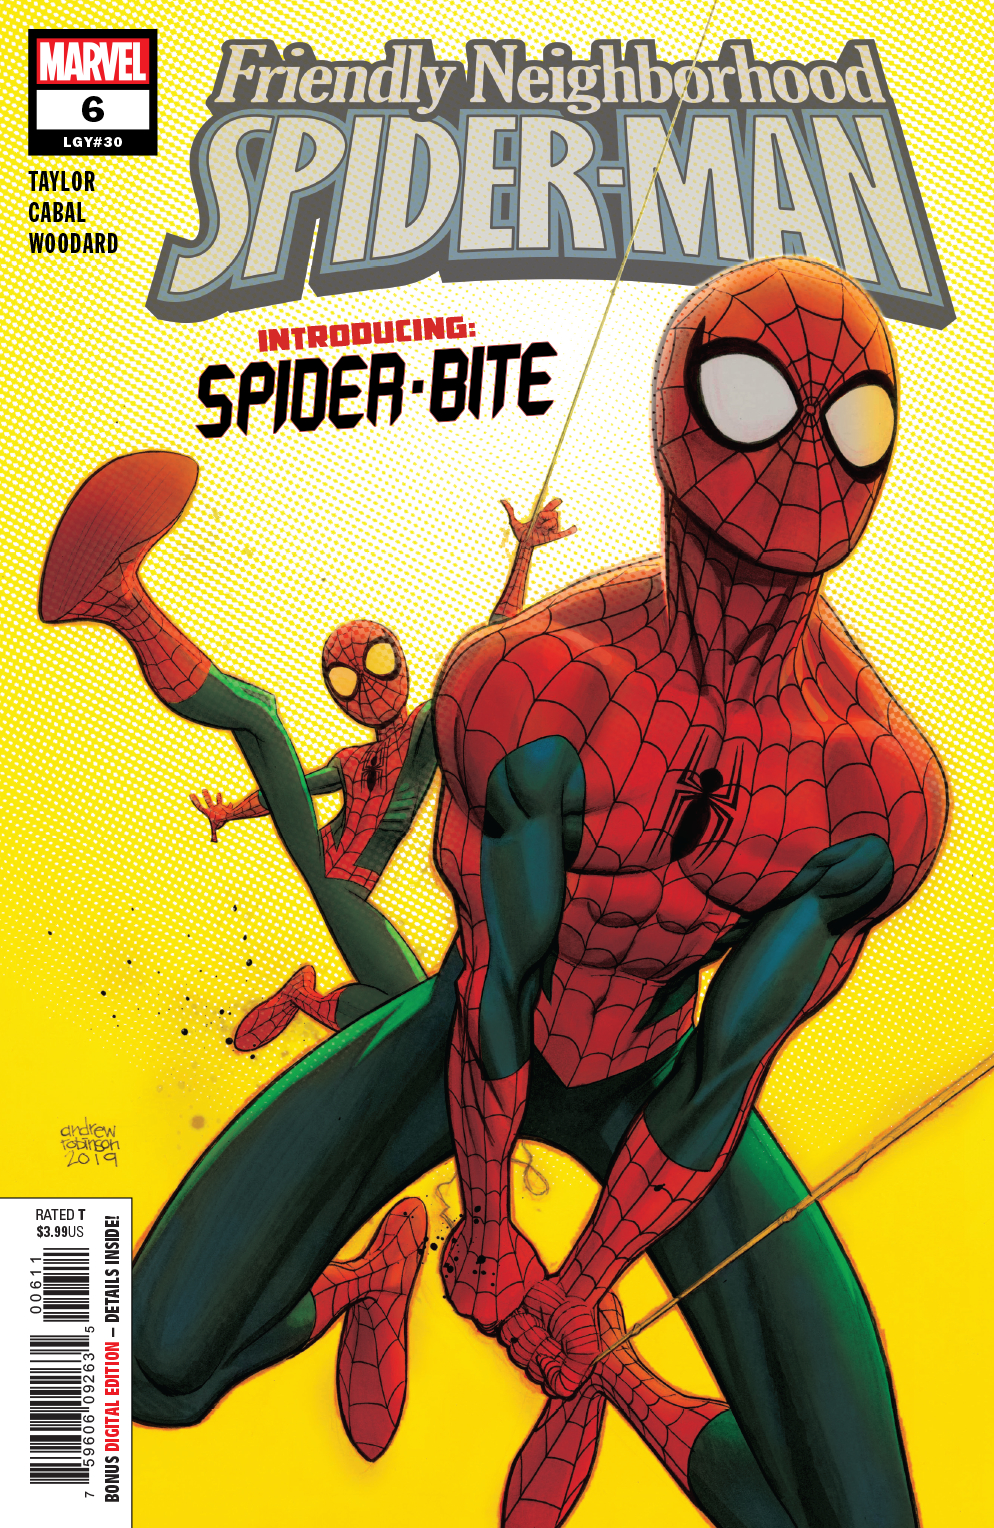 FRIENDLY NEIGHBORHOOD SPIDER-MAN #6